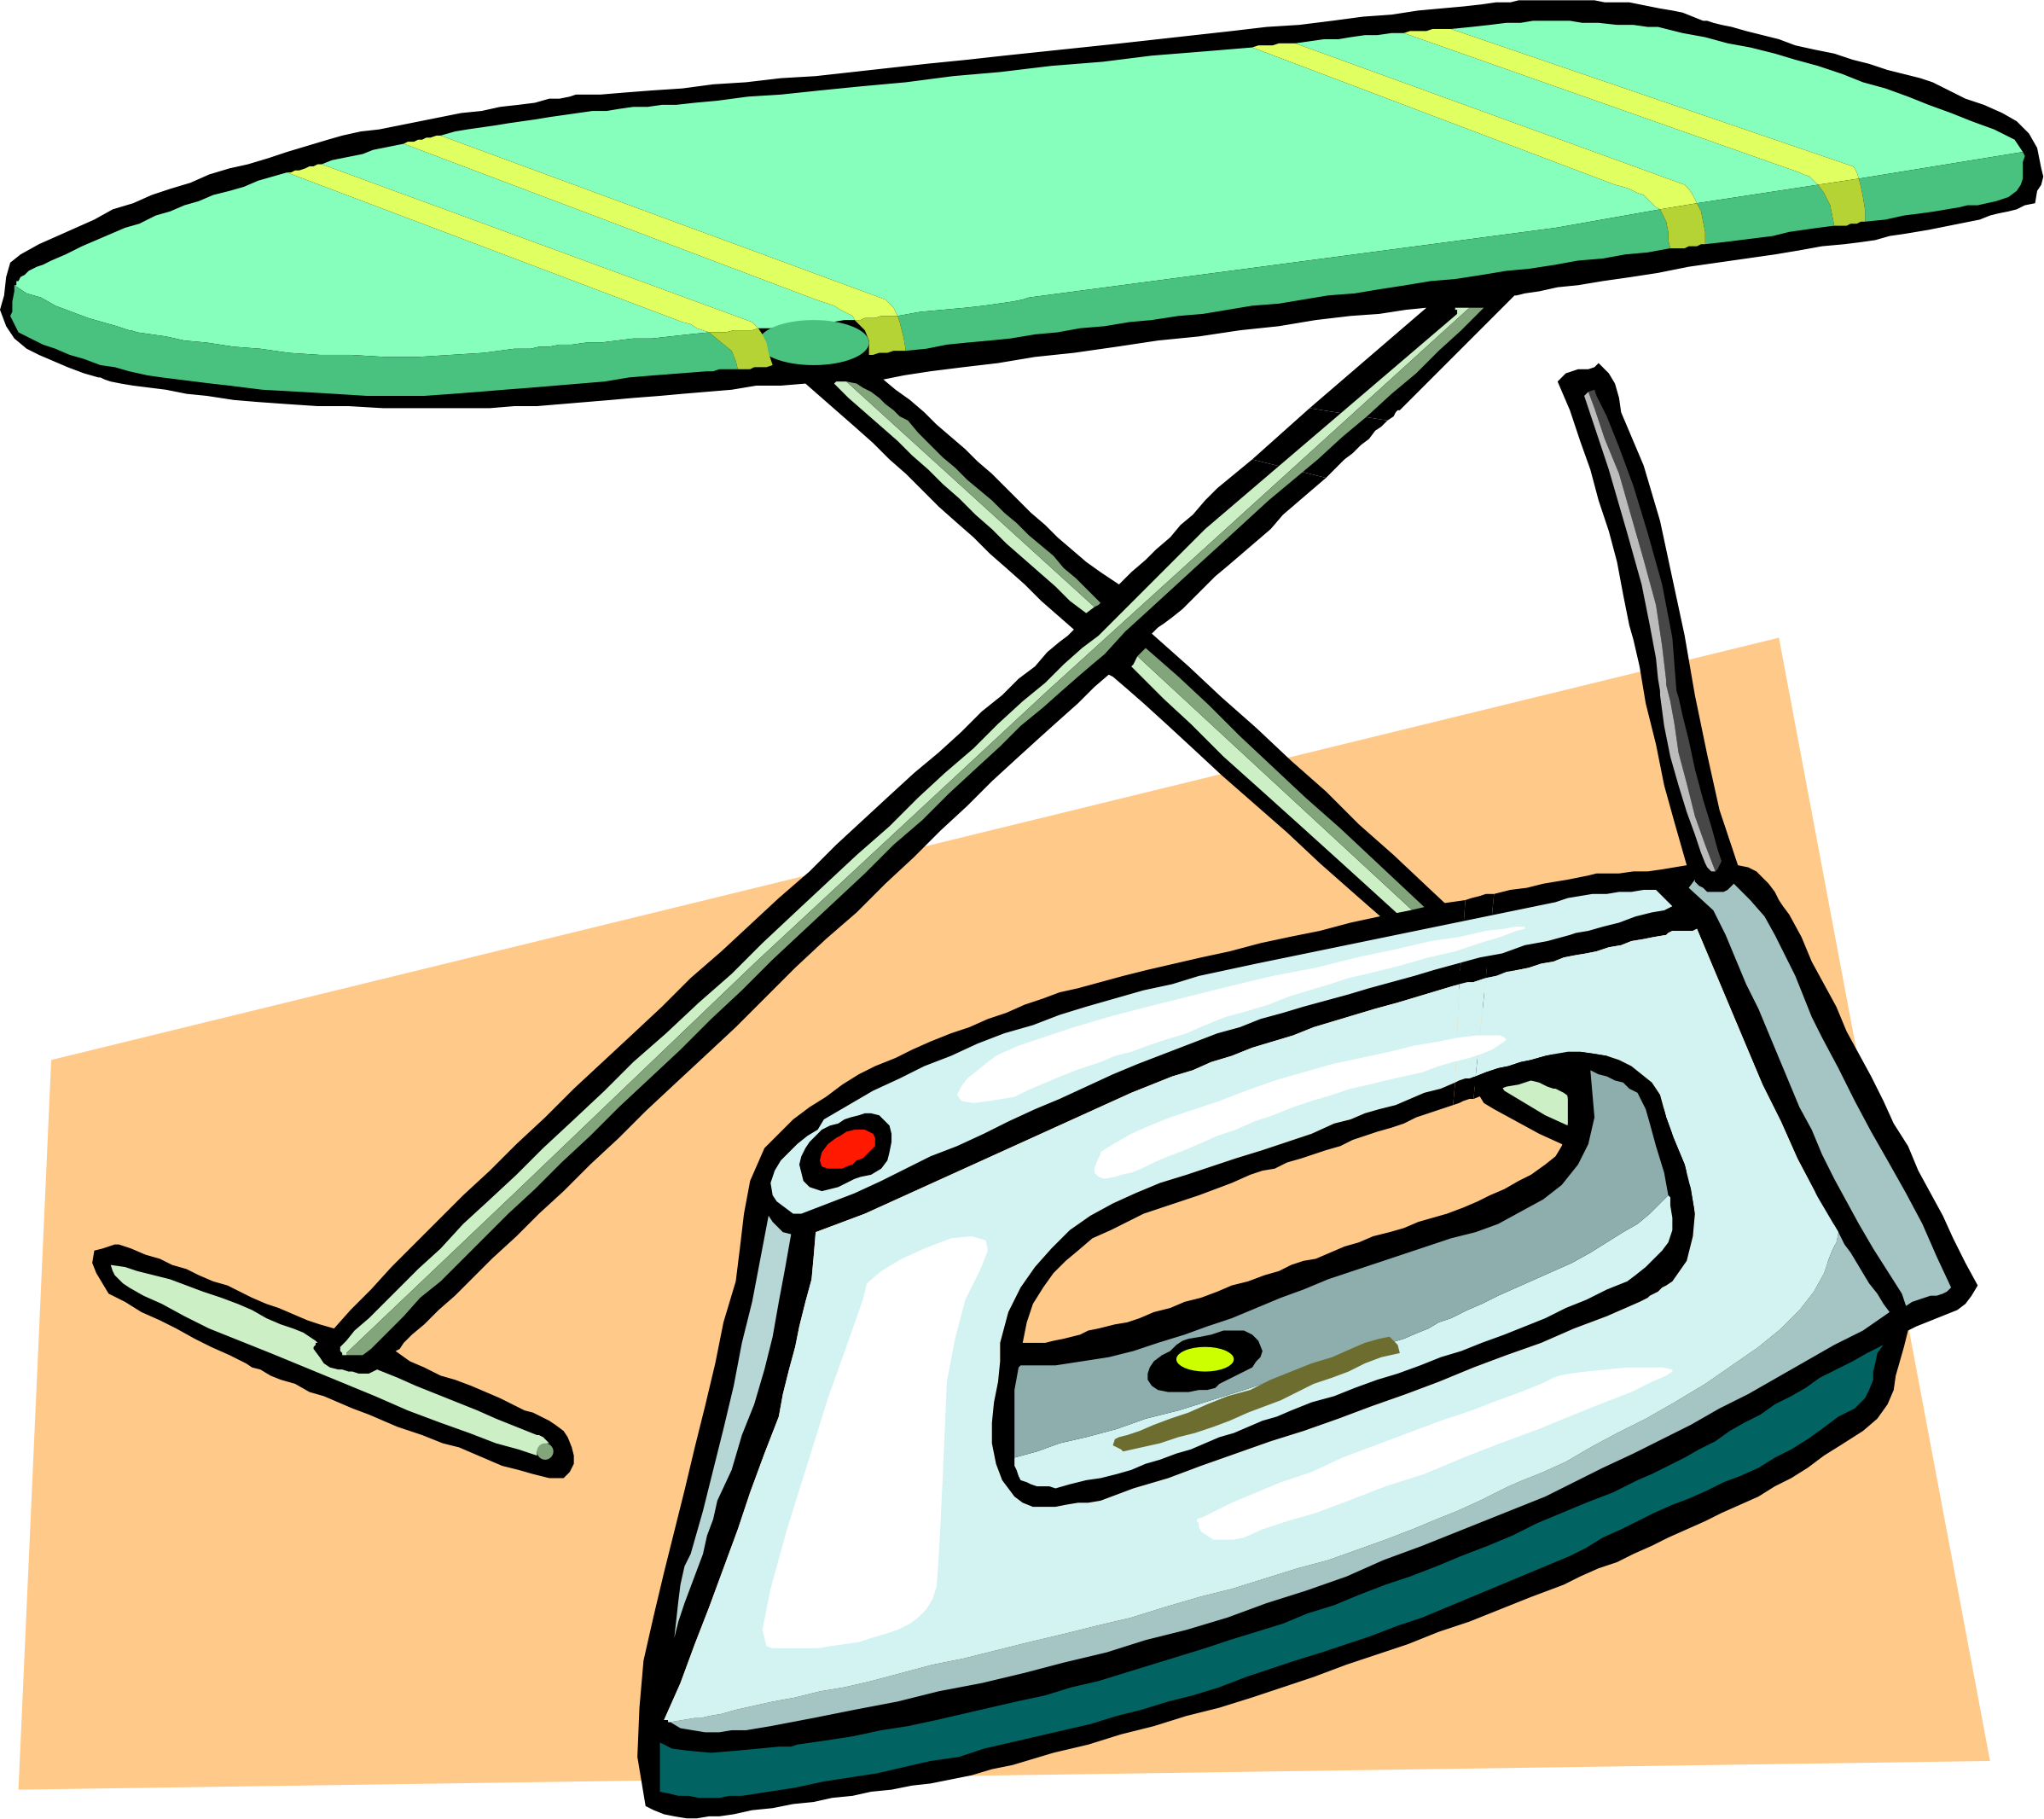 Clipart - Ironing board and iron